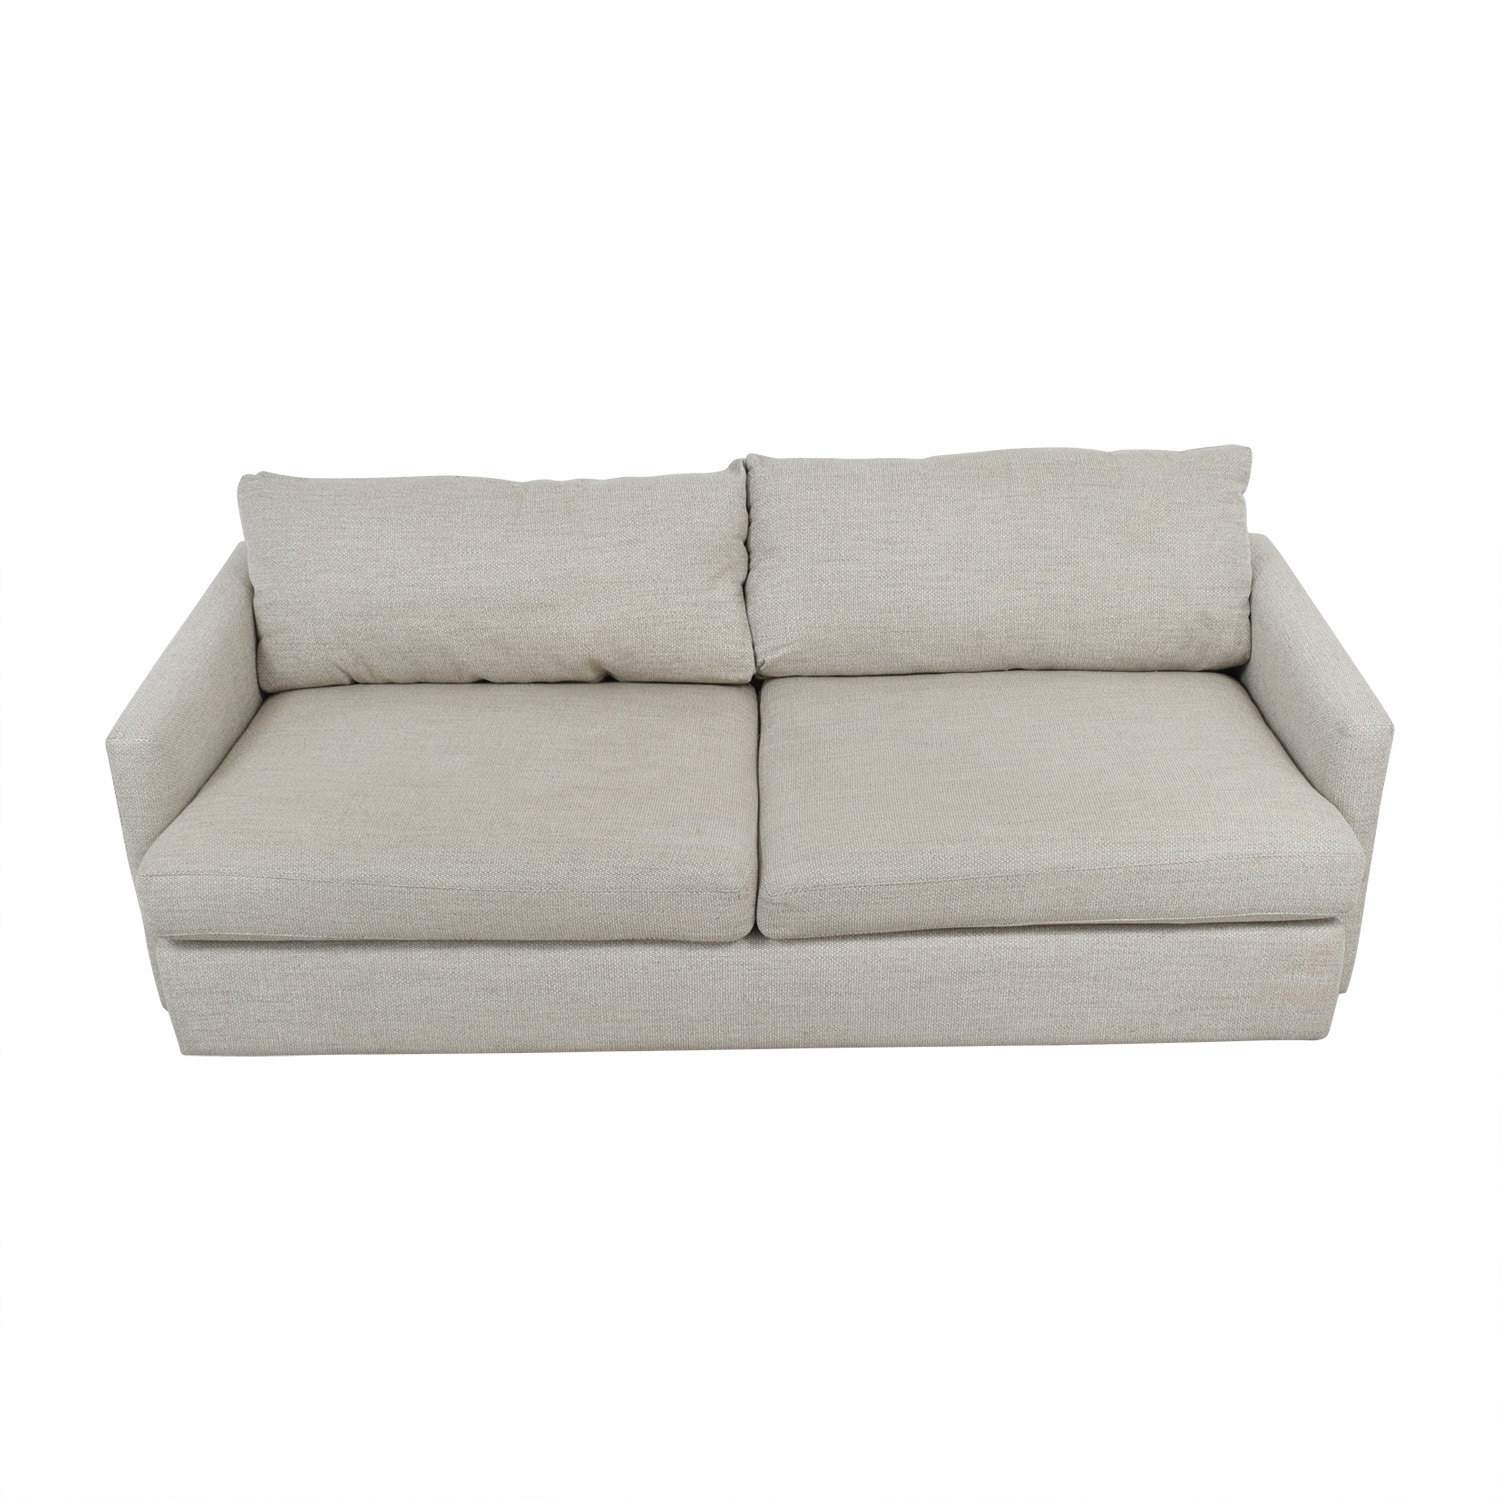 crate and barrel sofa cushion replacement bed 49 off lounge ii cement